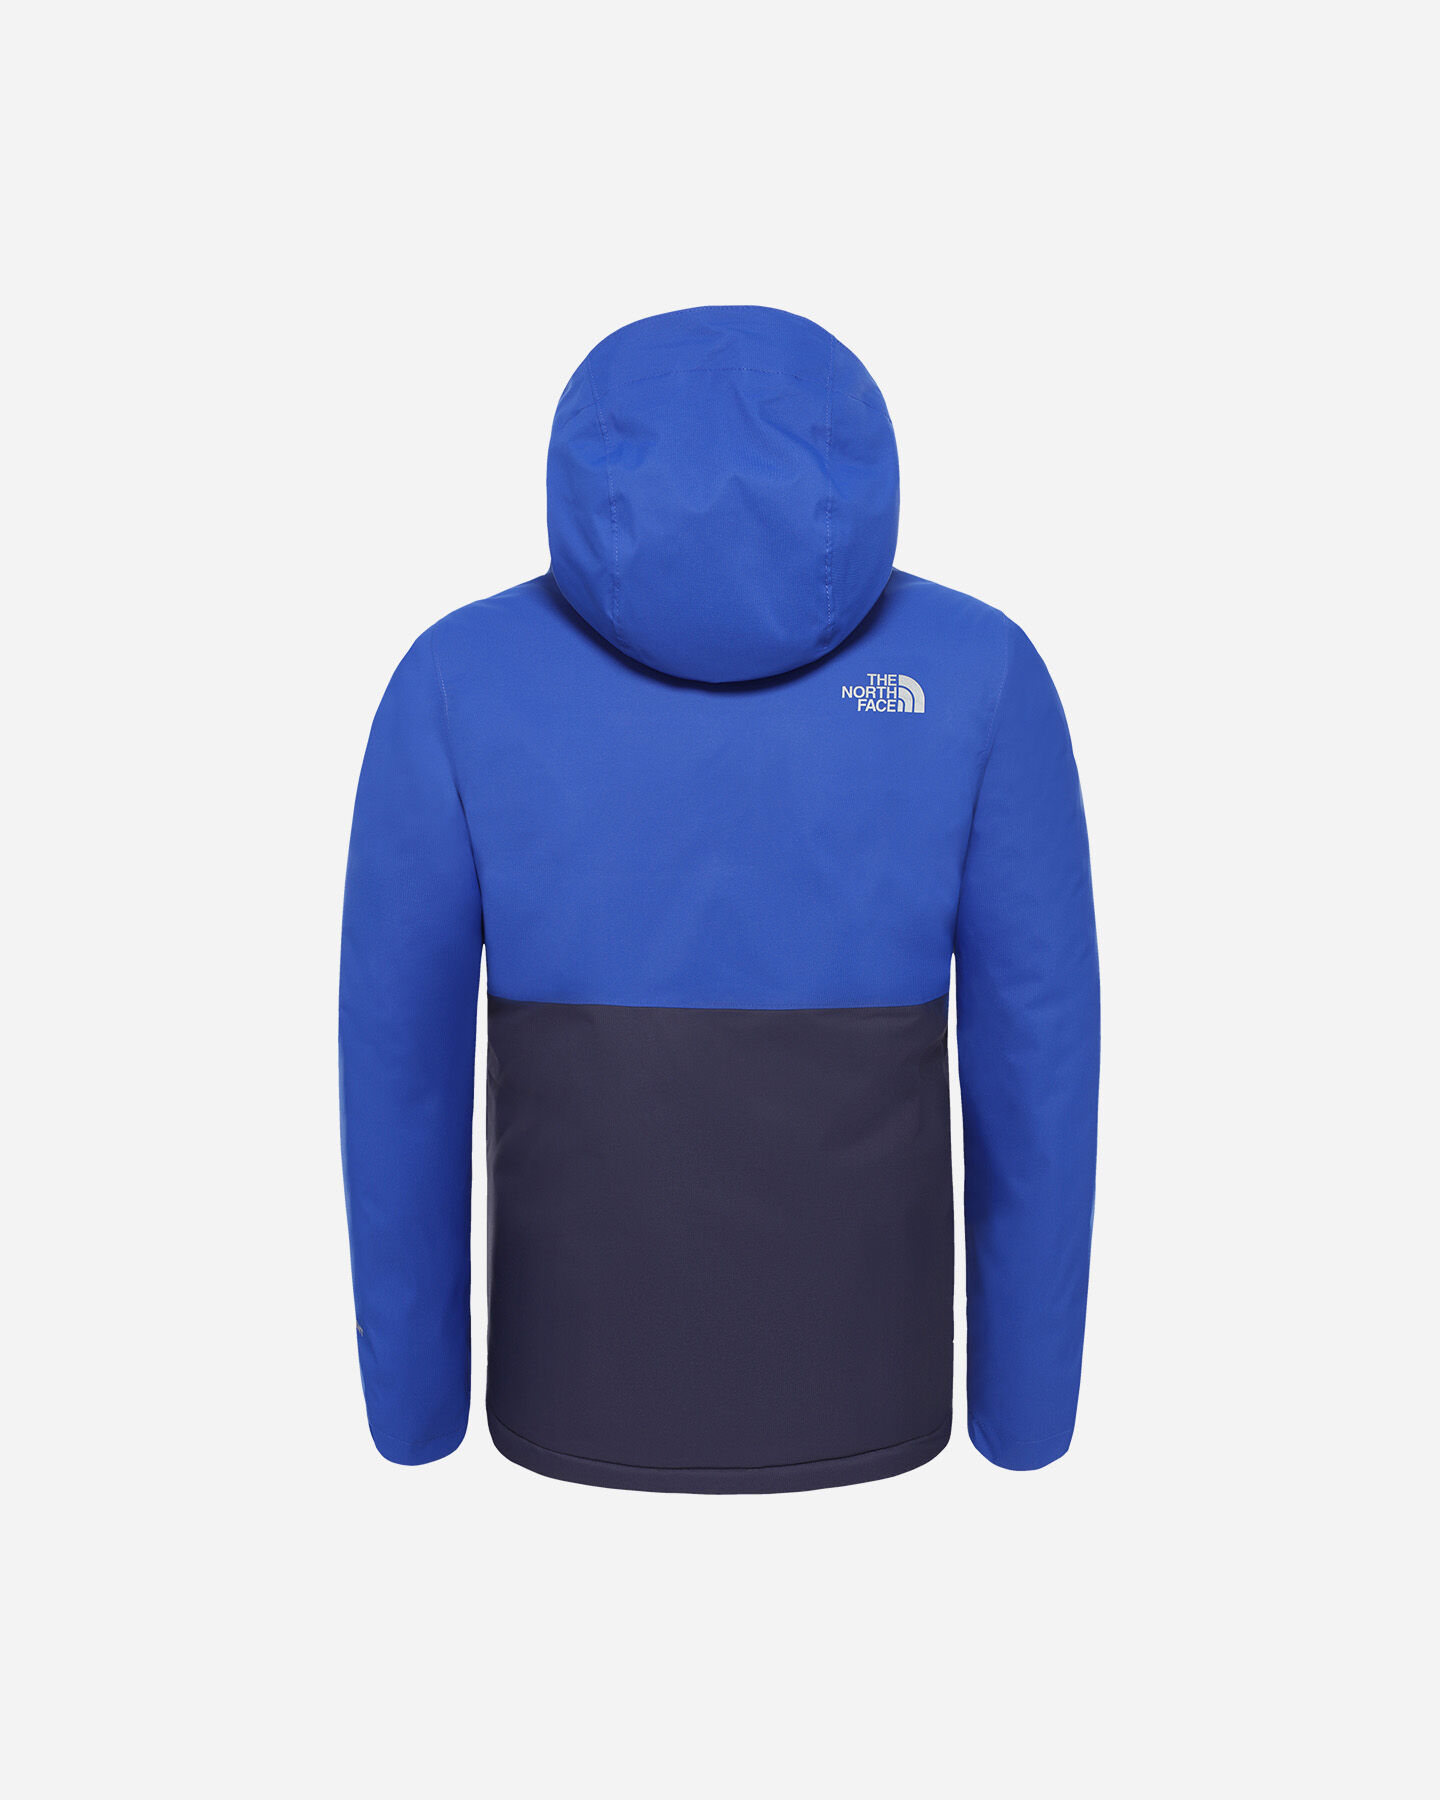 Giacca sci THE NORTH FACE SNOW QUEST PLUS JR S5123526 scatto 1